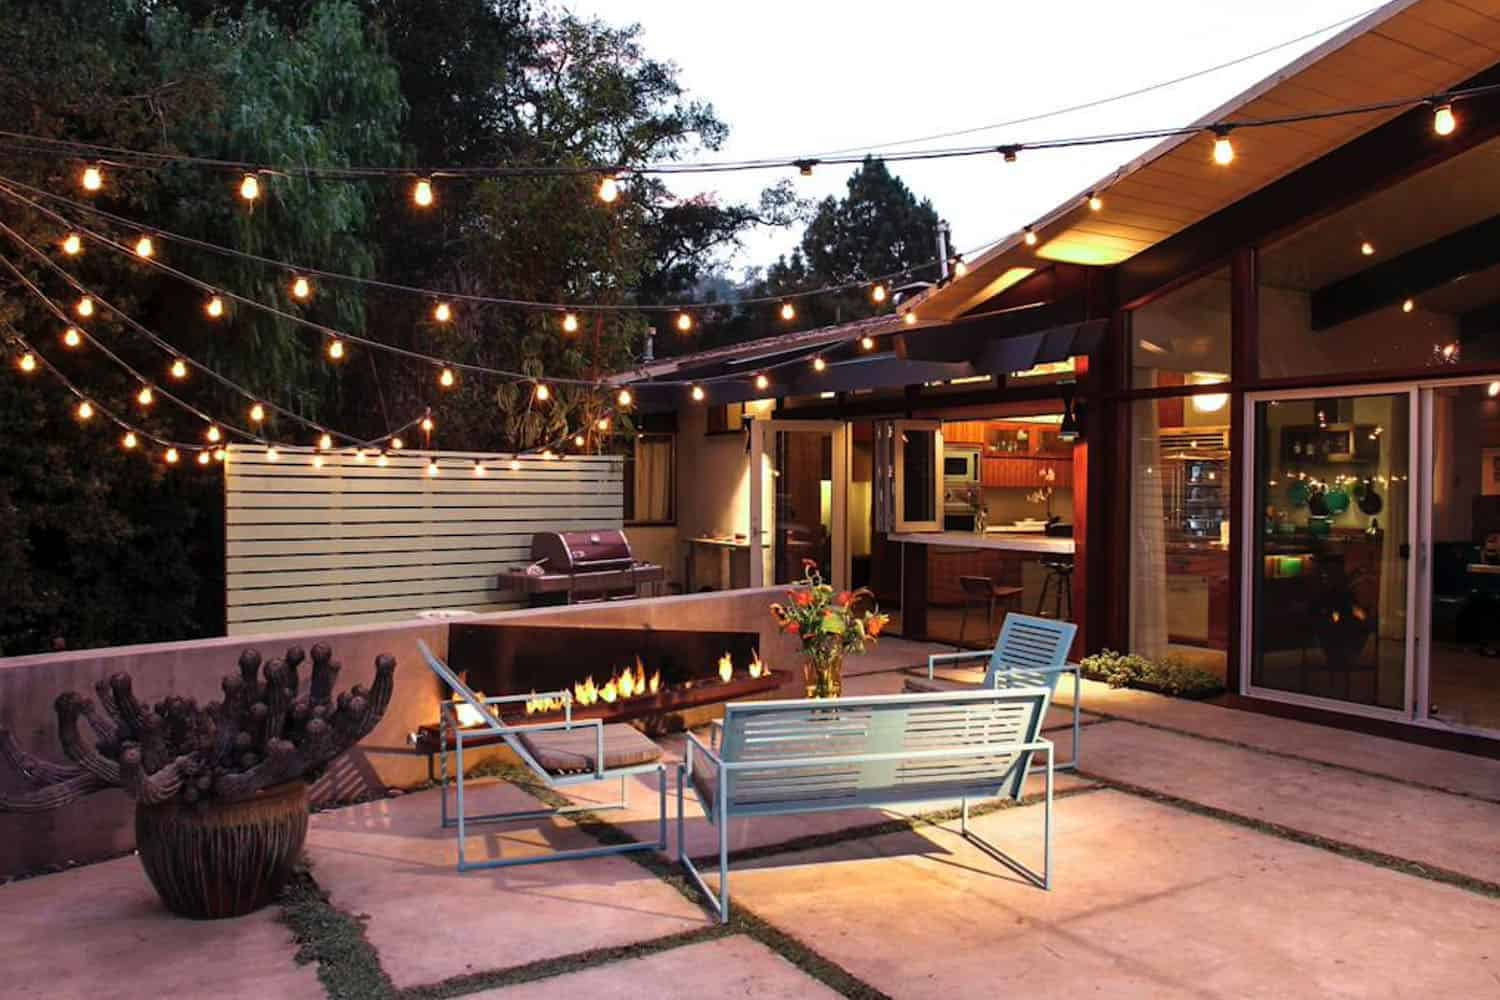 10 Best Outdoor Lighting Ideas For Those Endless Summer Nights